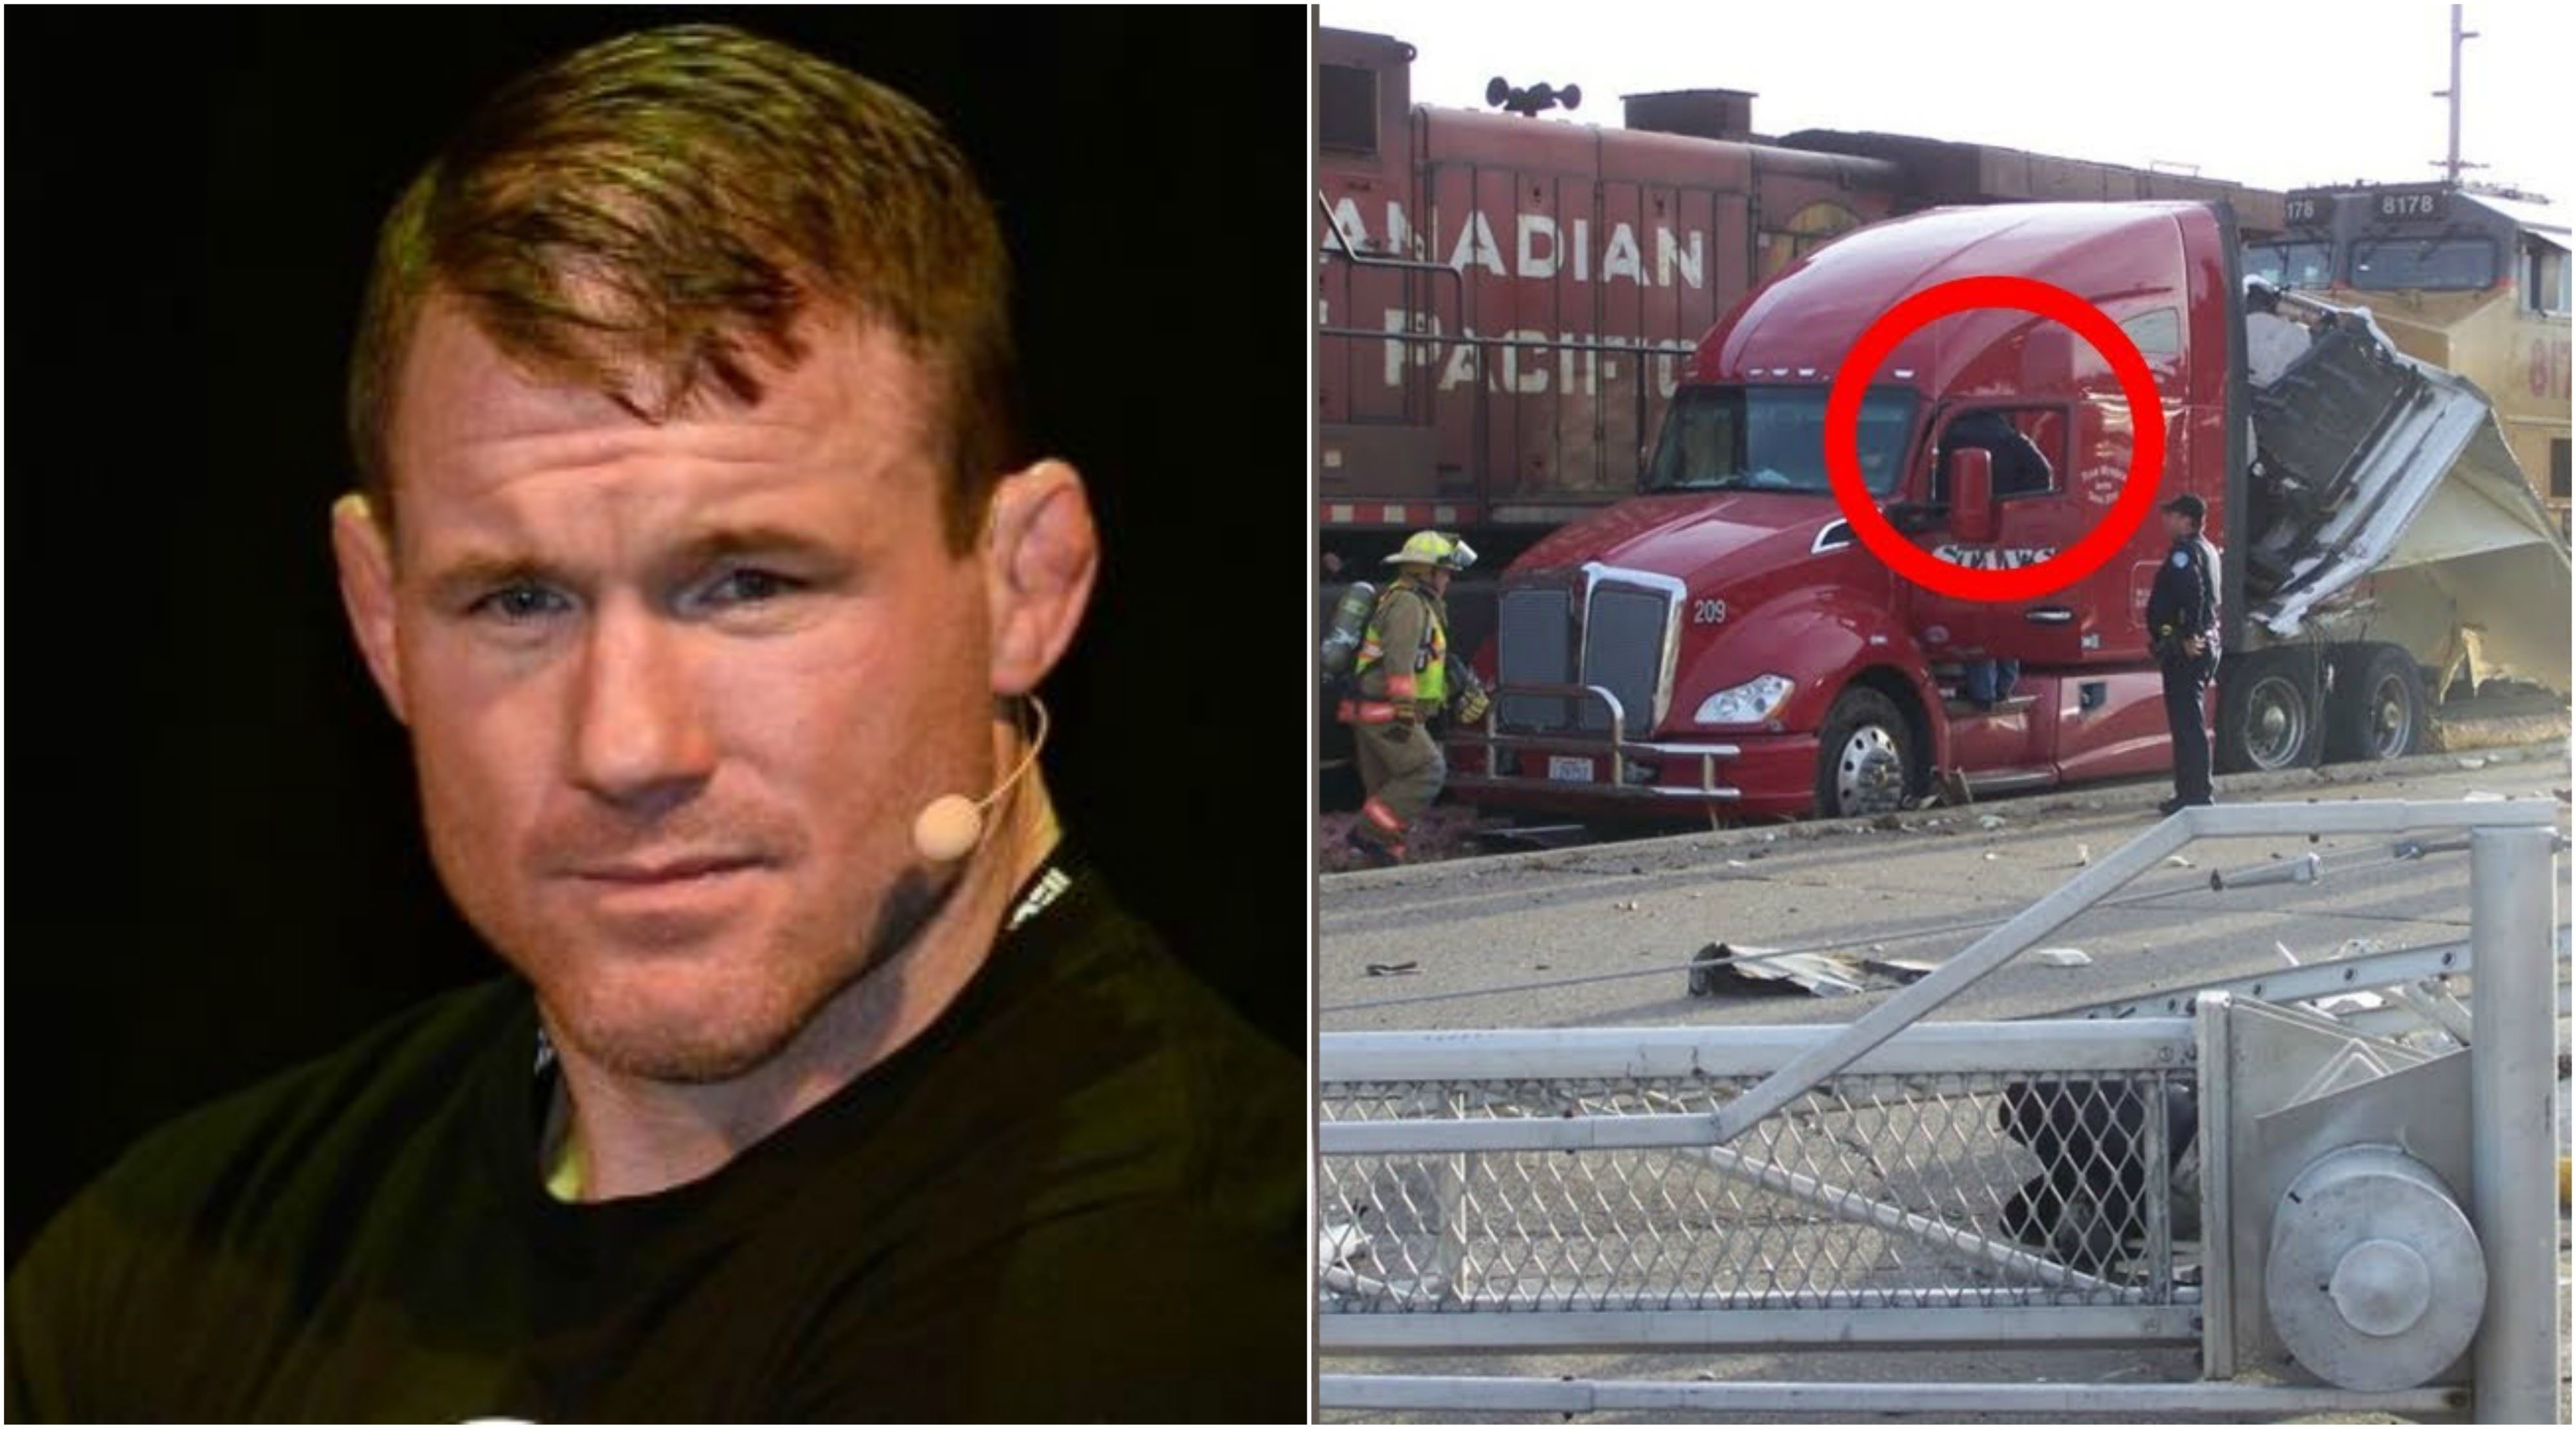 Former 2 Time Ufc Champion Matt Hughes Hit By Moving Train